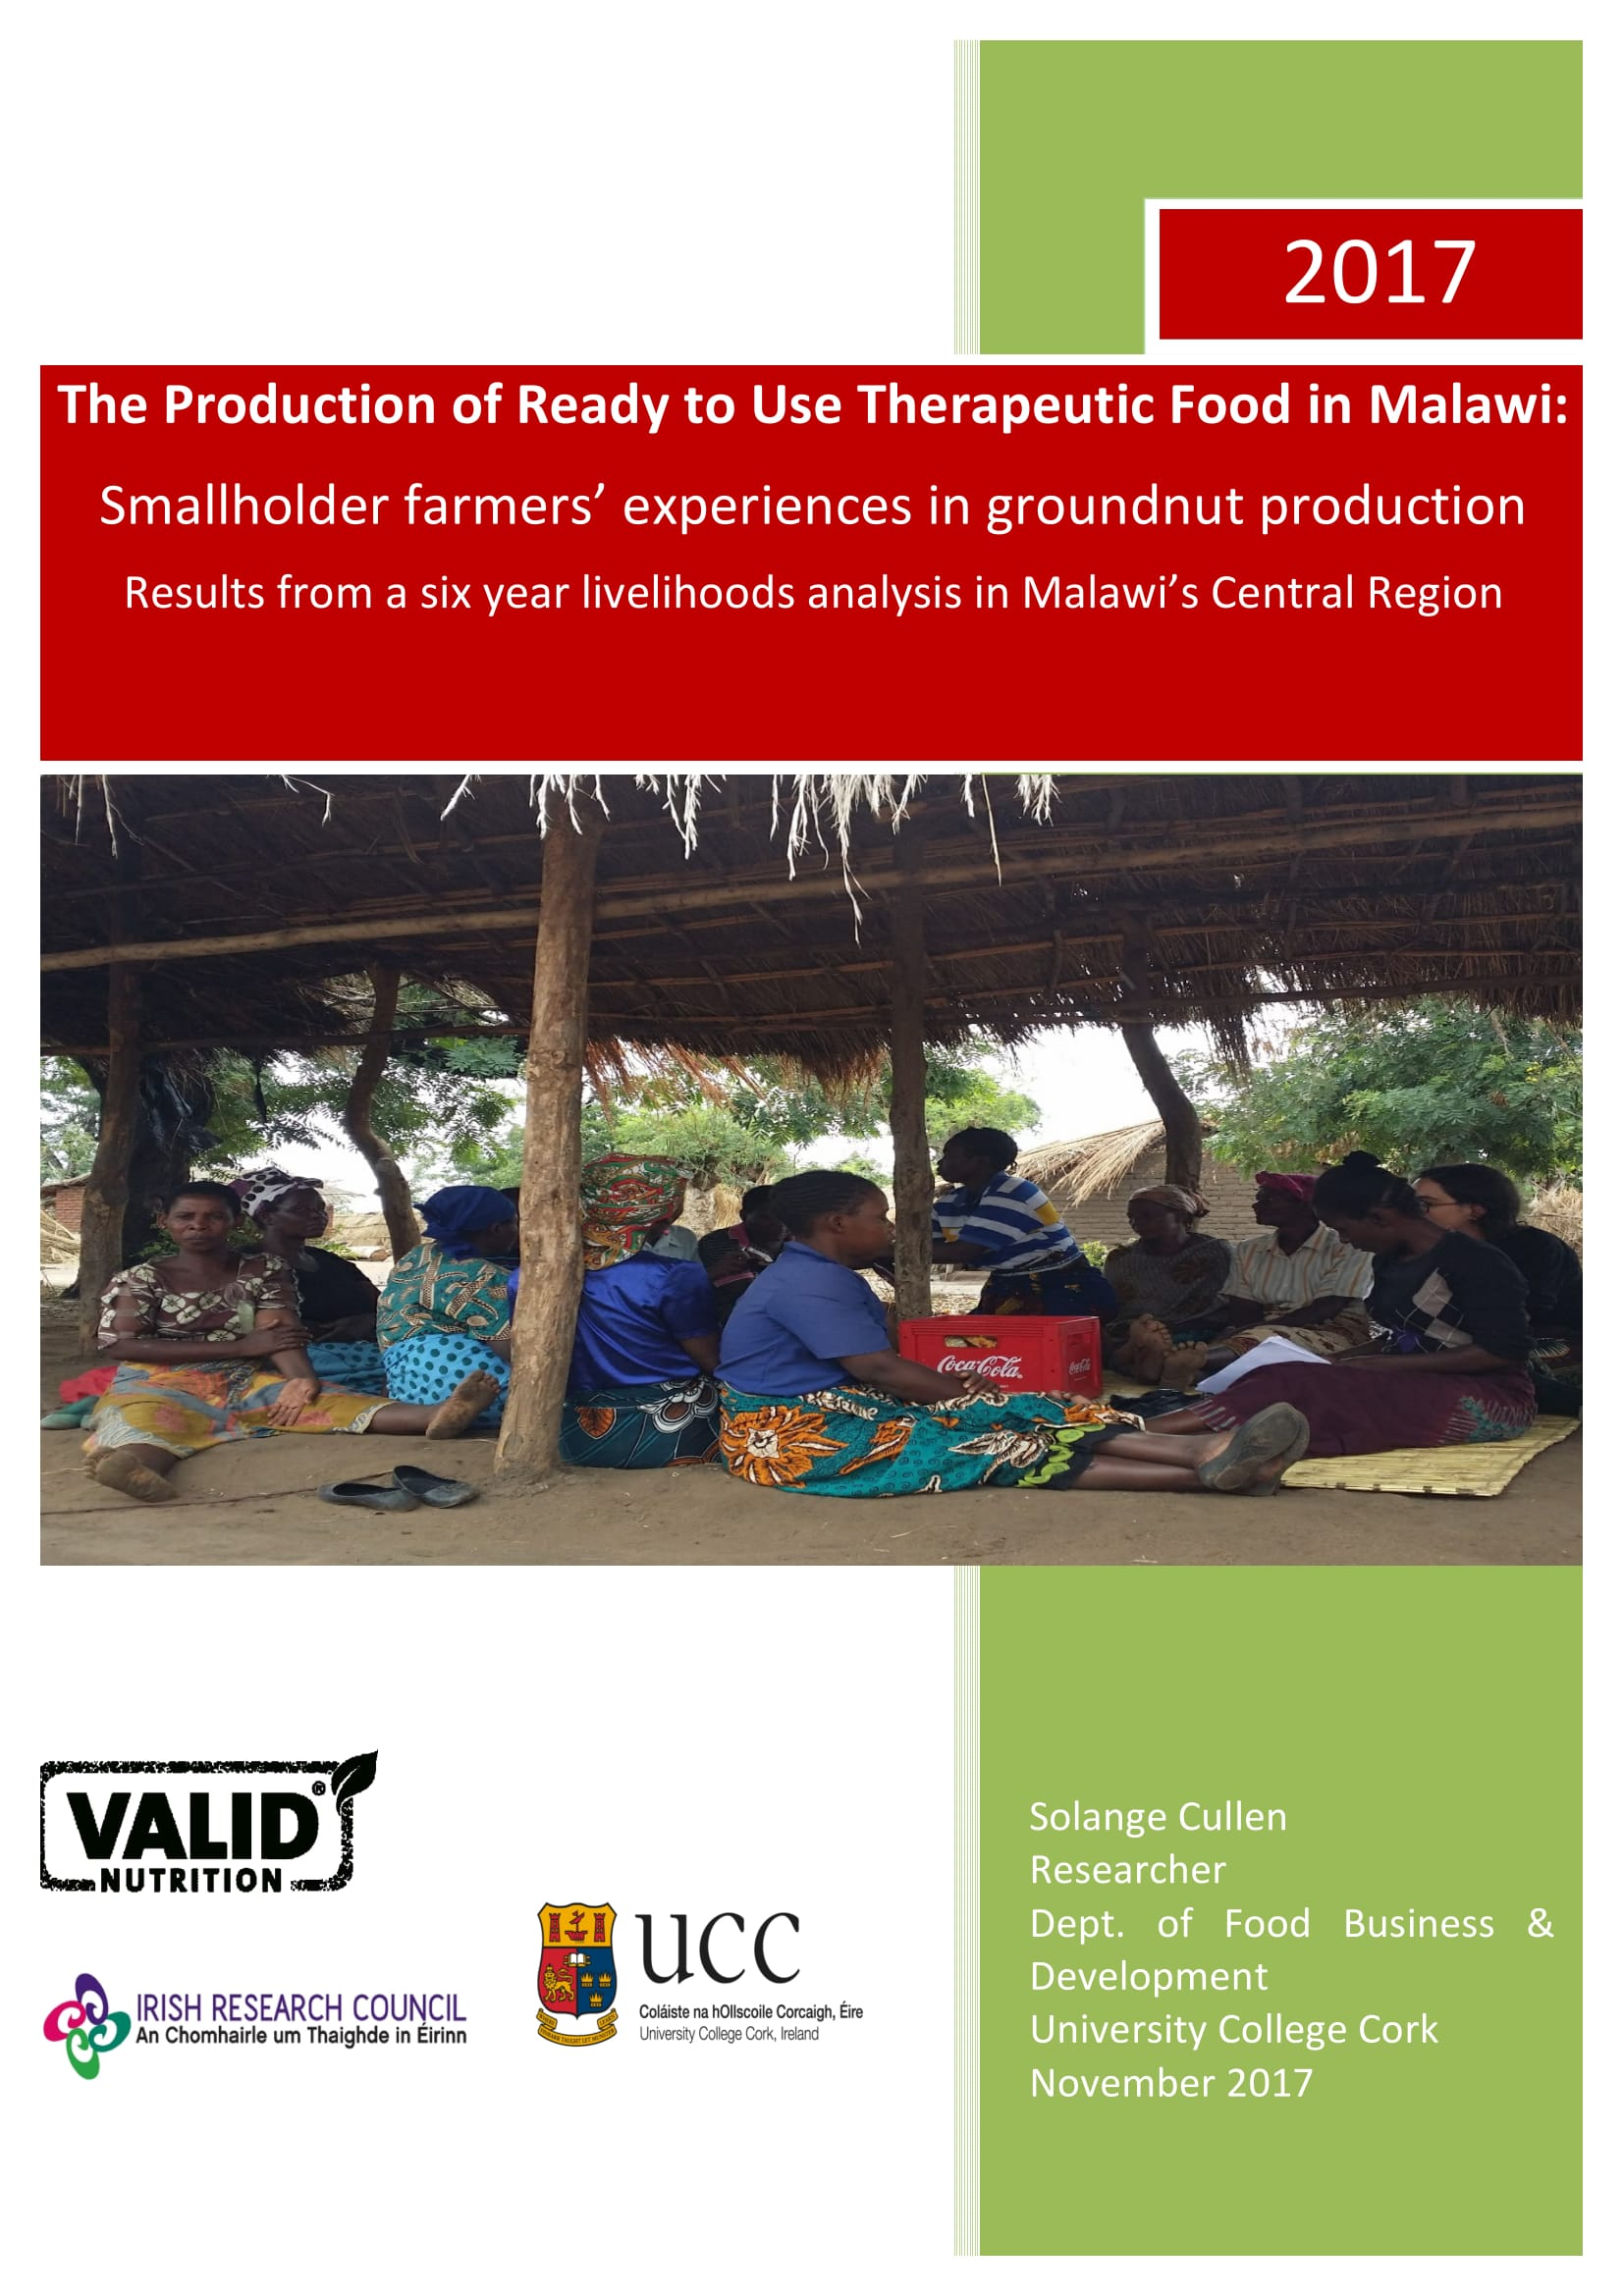 UCC's Department of Food Business & Development collaborates with Valid Nutrition in research to combat malnutrition and support livelihoods in Malawi: Meeting on 20th November